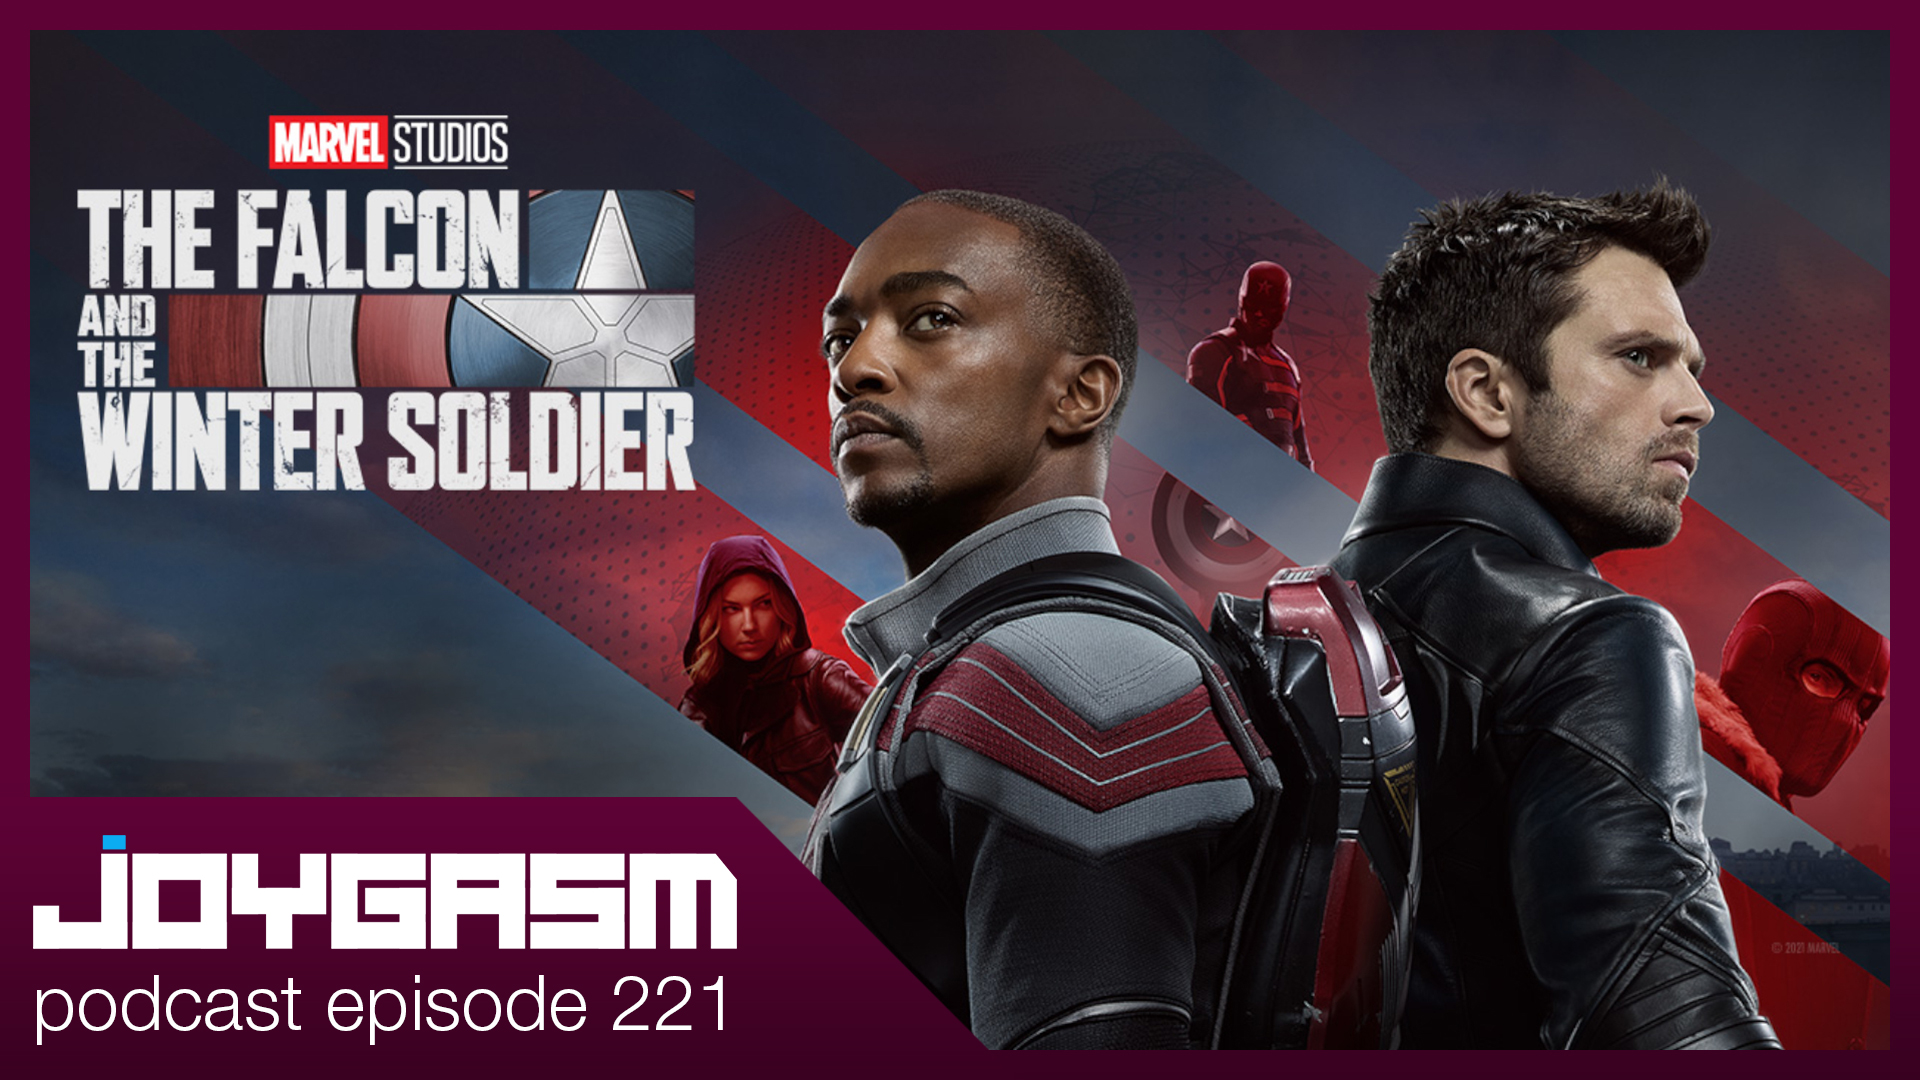 Ep. 221: The Falcon And The Winter Soldier Season 1 Review